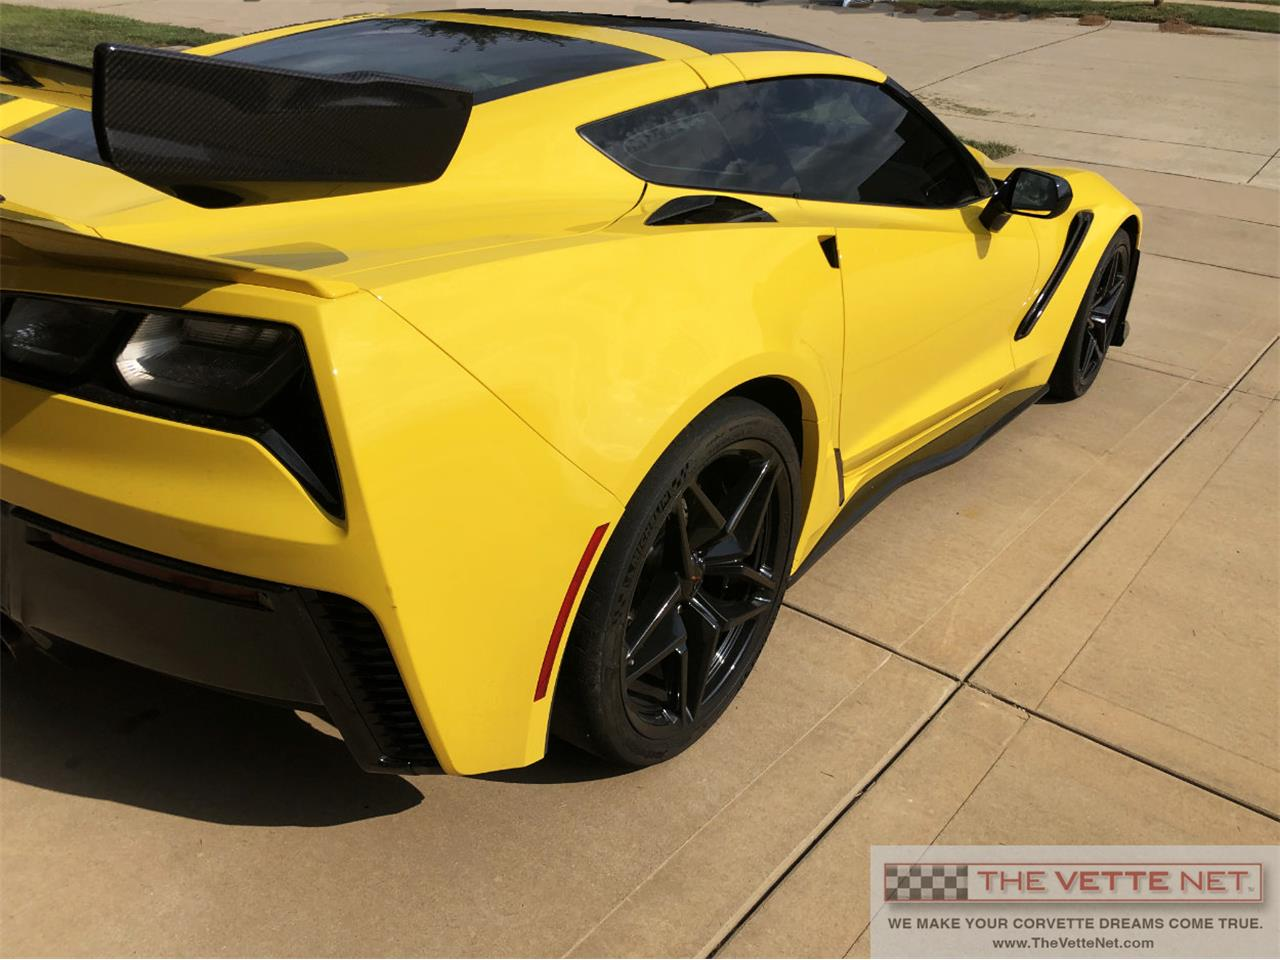 2019 Chevrolet Corvette (CC-1387213) for sale in Sarasota, Florida